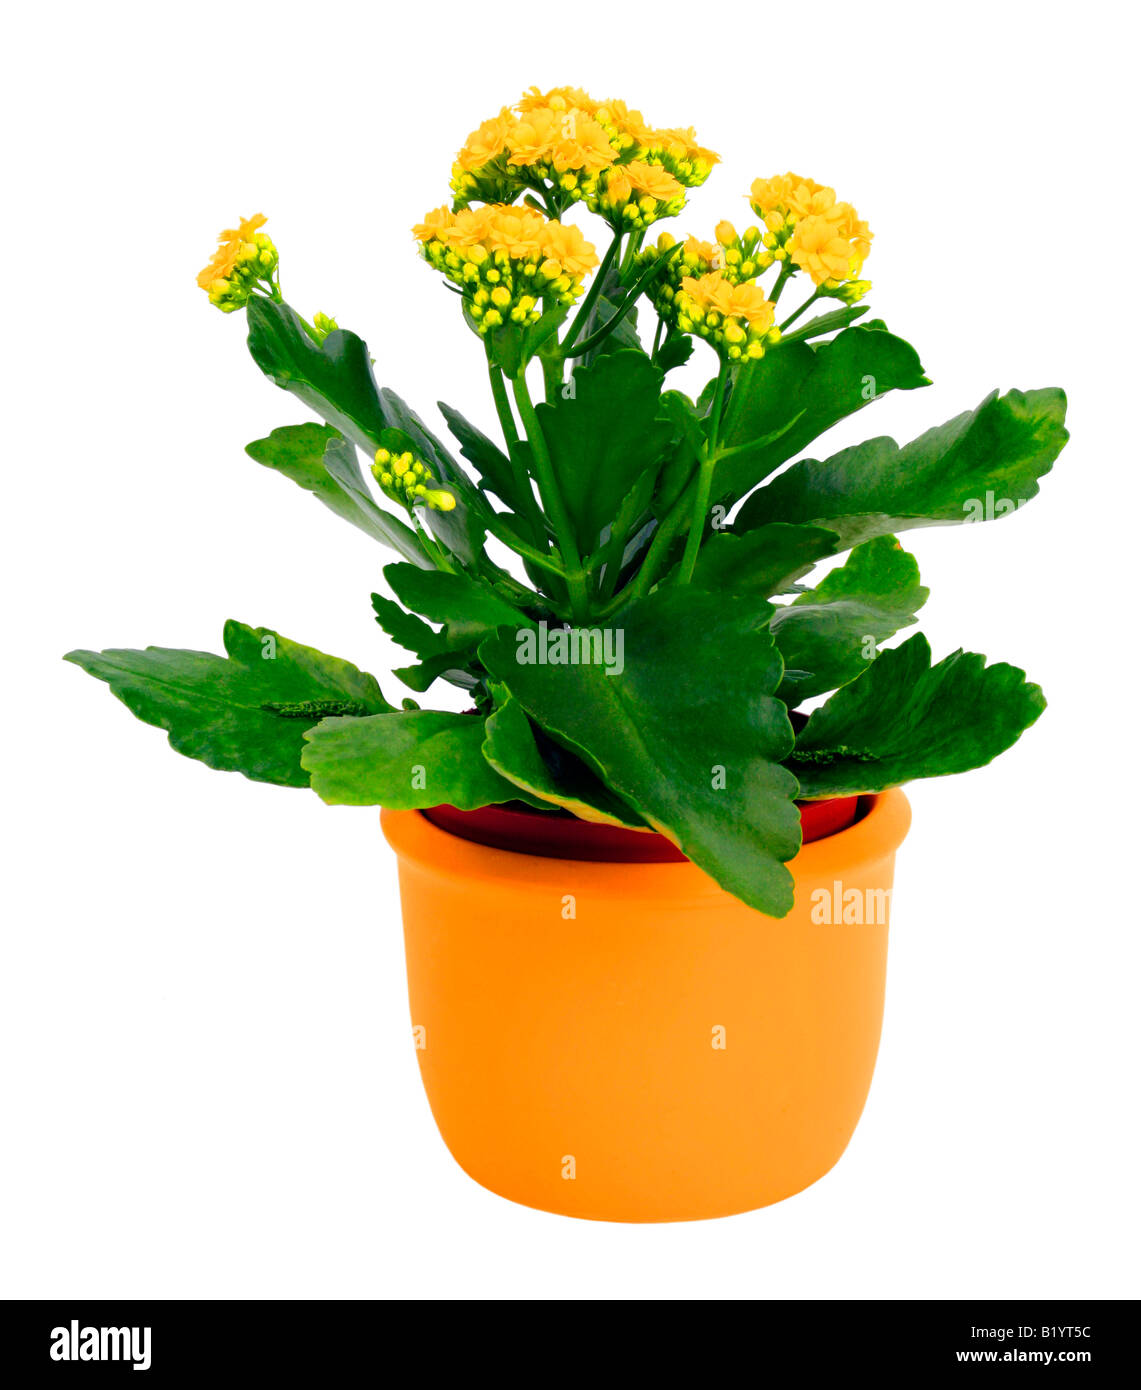 kalanchoe house plant html with Stock Photo Brilliant Star Flaming Katy Madagascar Widow S Thrill Kalanchoe Blossfeldiana 18436696 on 2253759list besides The Most Popular Indoor Plants Of Germany furthermore Stock Photo Bright Orange Flowering Kalanchoe Plant Isolated On White in addition Beliebteste Zimmerpflanzen Topfpflanzen together with Kalanchoe.